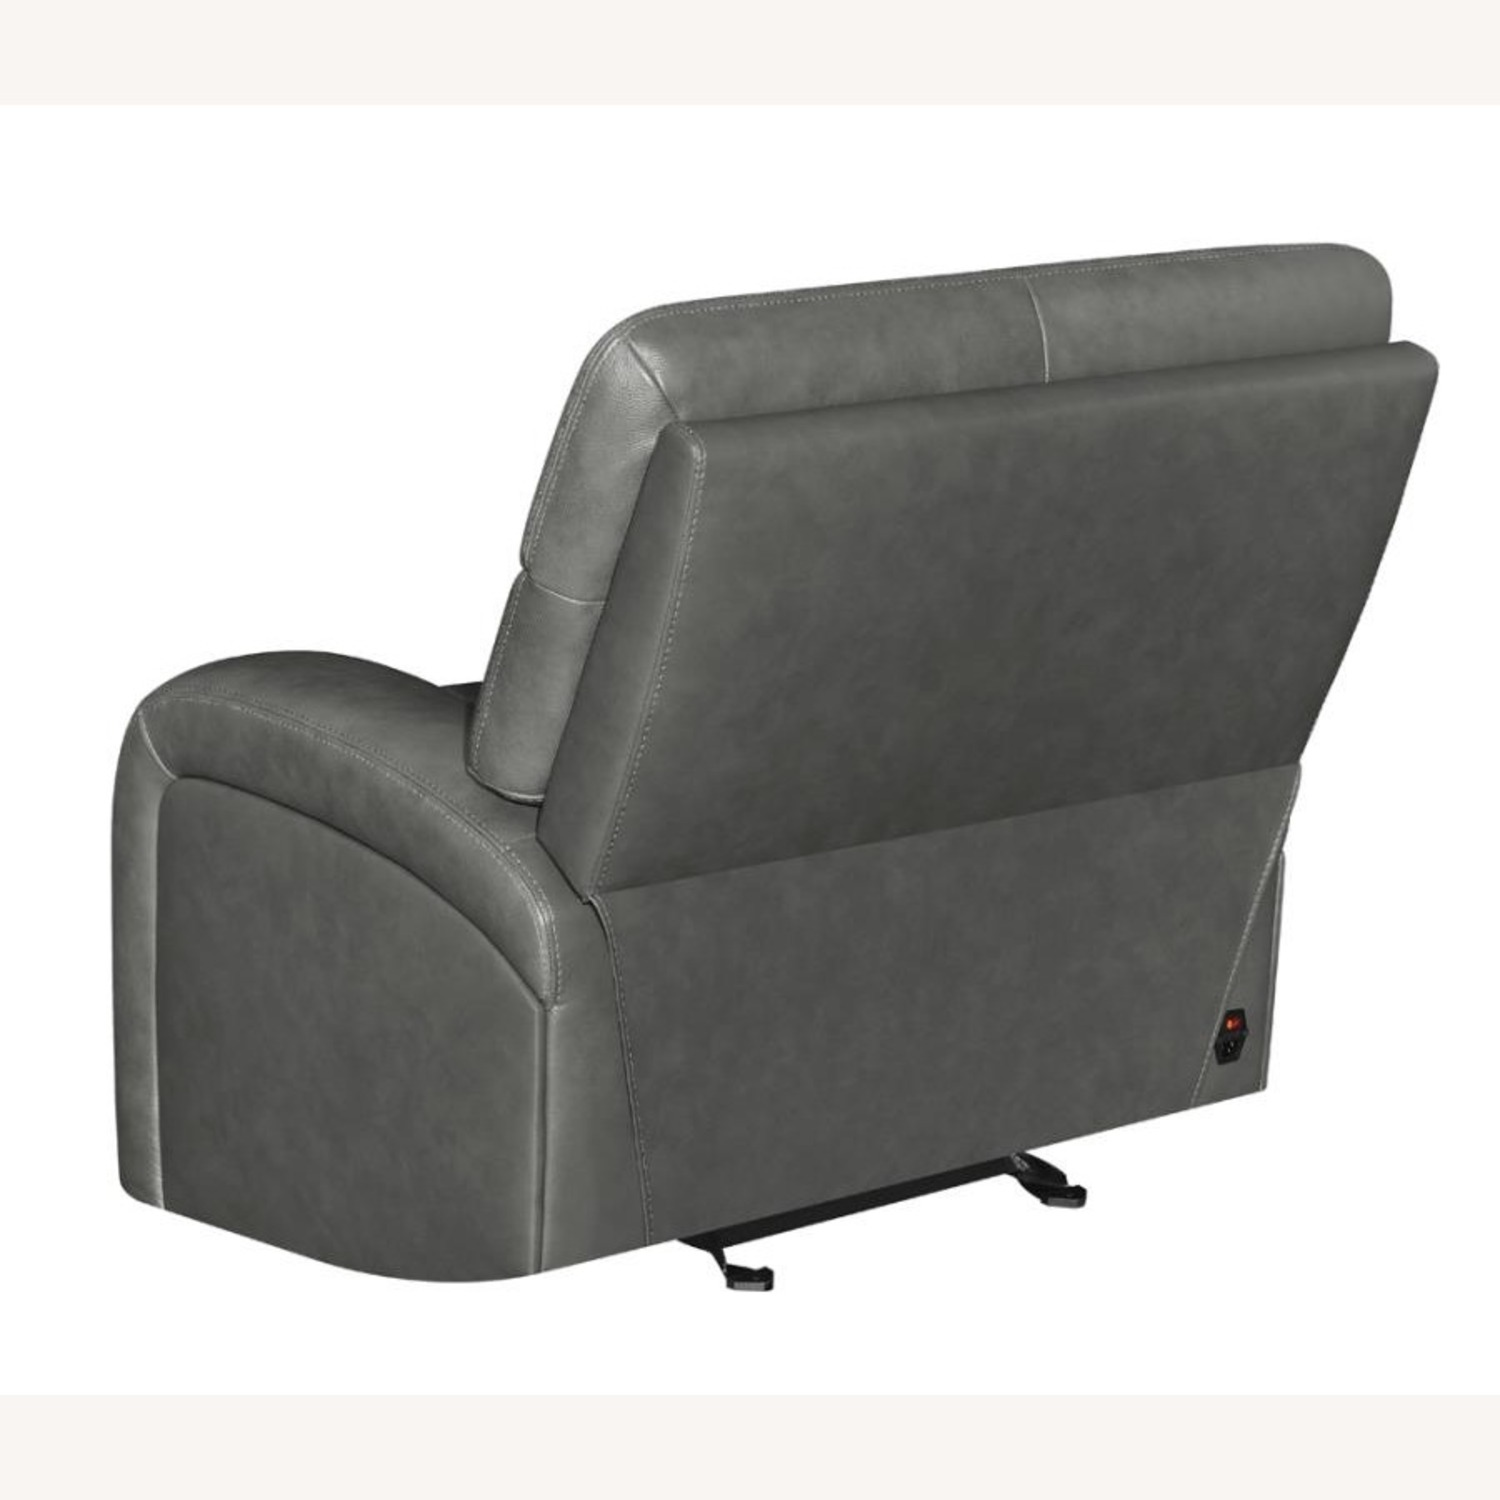 Power Recliner Chair In Charcoal Leatherette - image-3